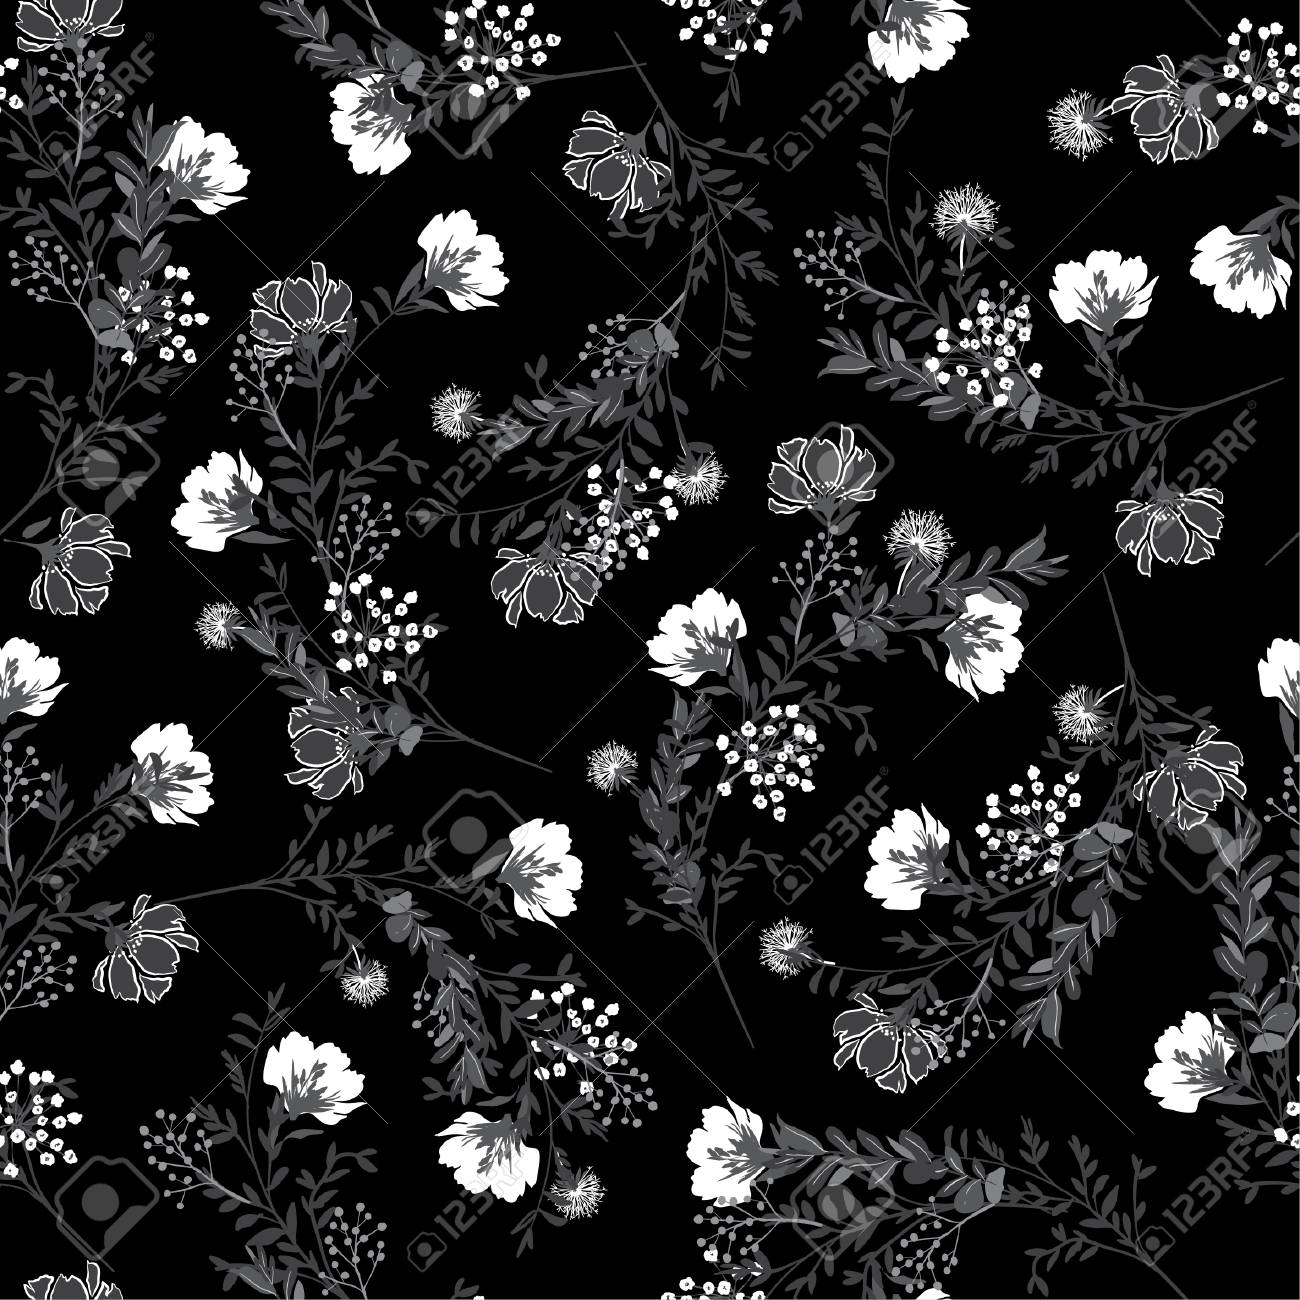 Black and white Seamless pattern ,blooming garden flowers in delicate botanical design for fashion,fabric,wallpaper and all prints - 109481867